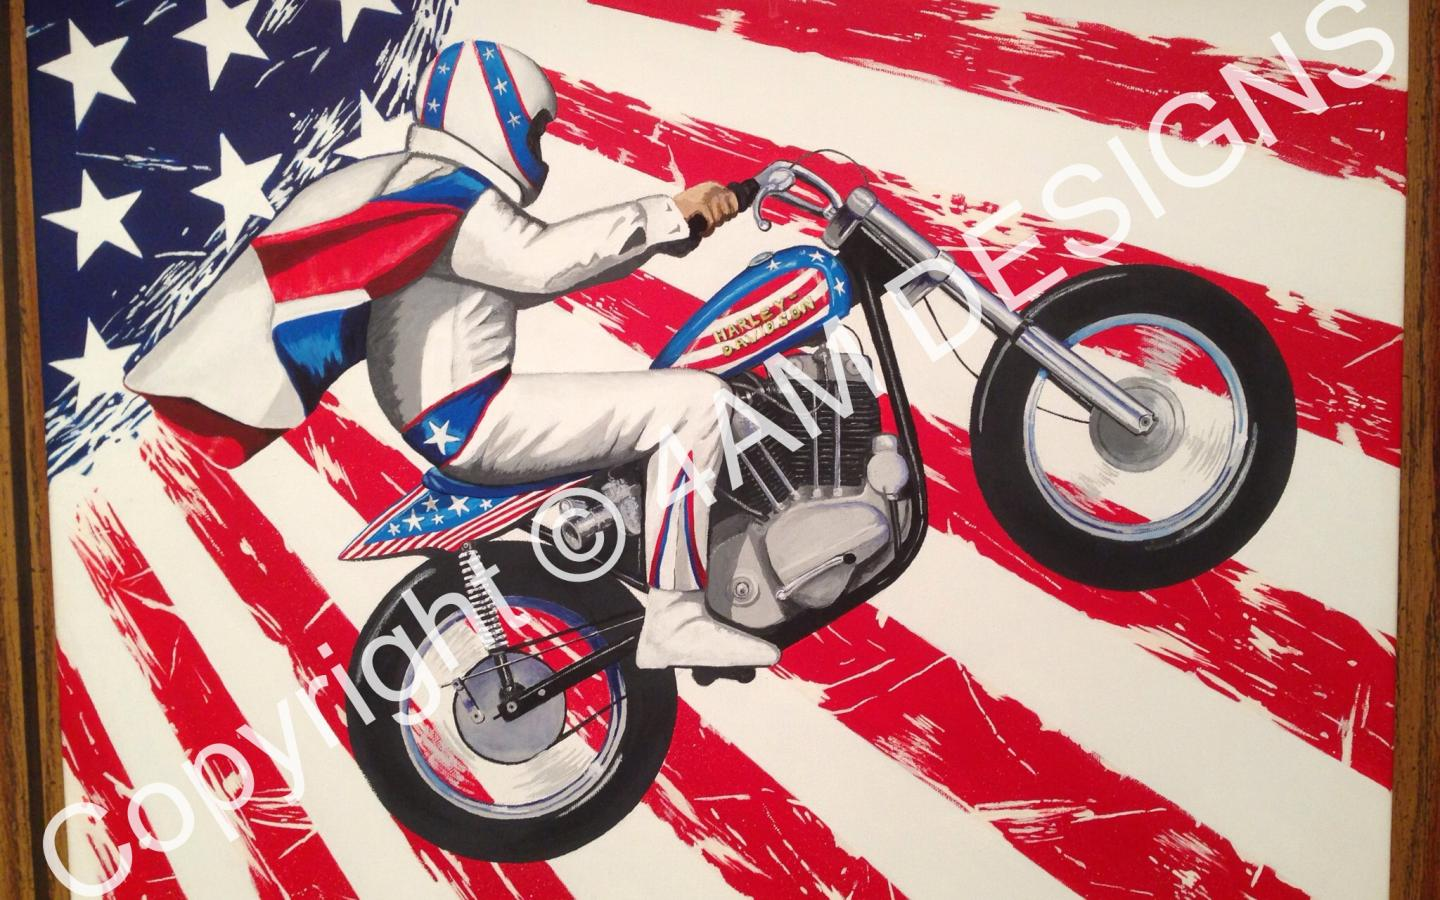 1440x900 - Evel Knievel Wallpapers 29